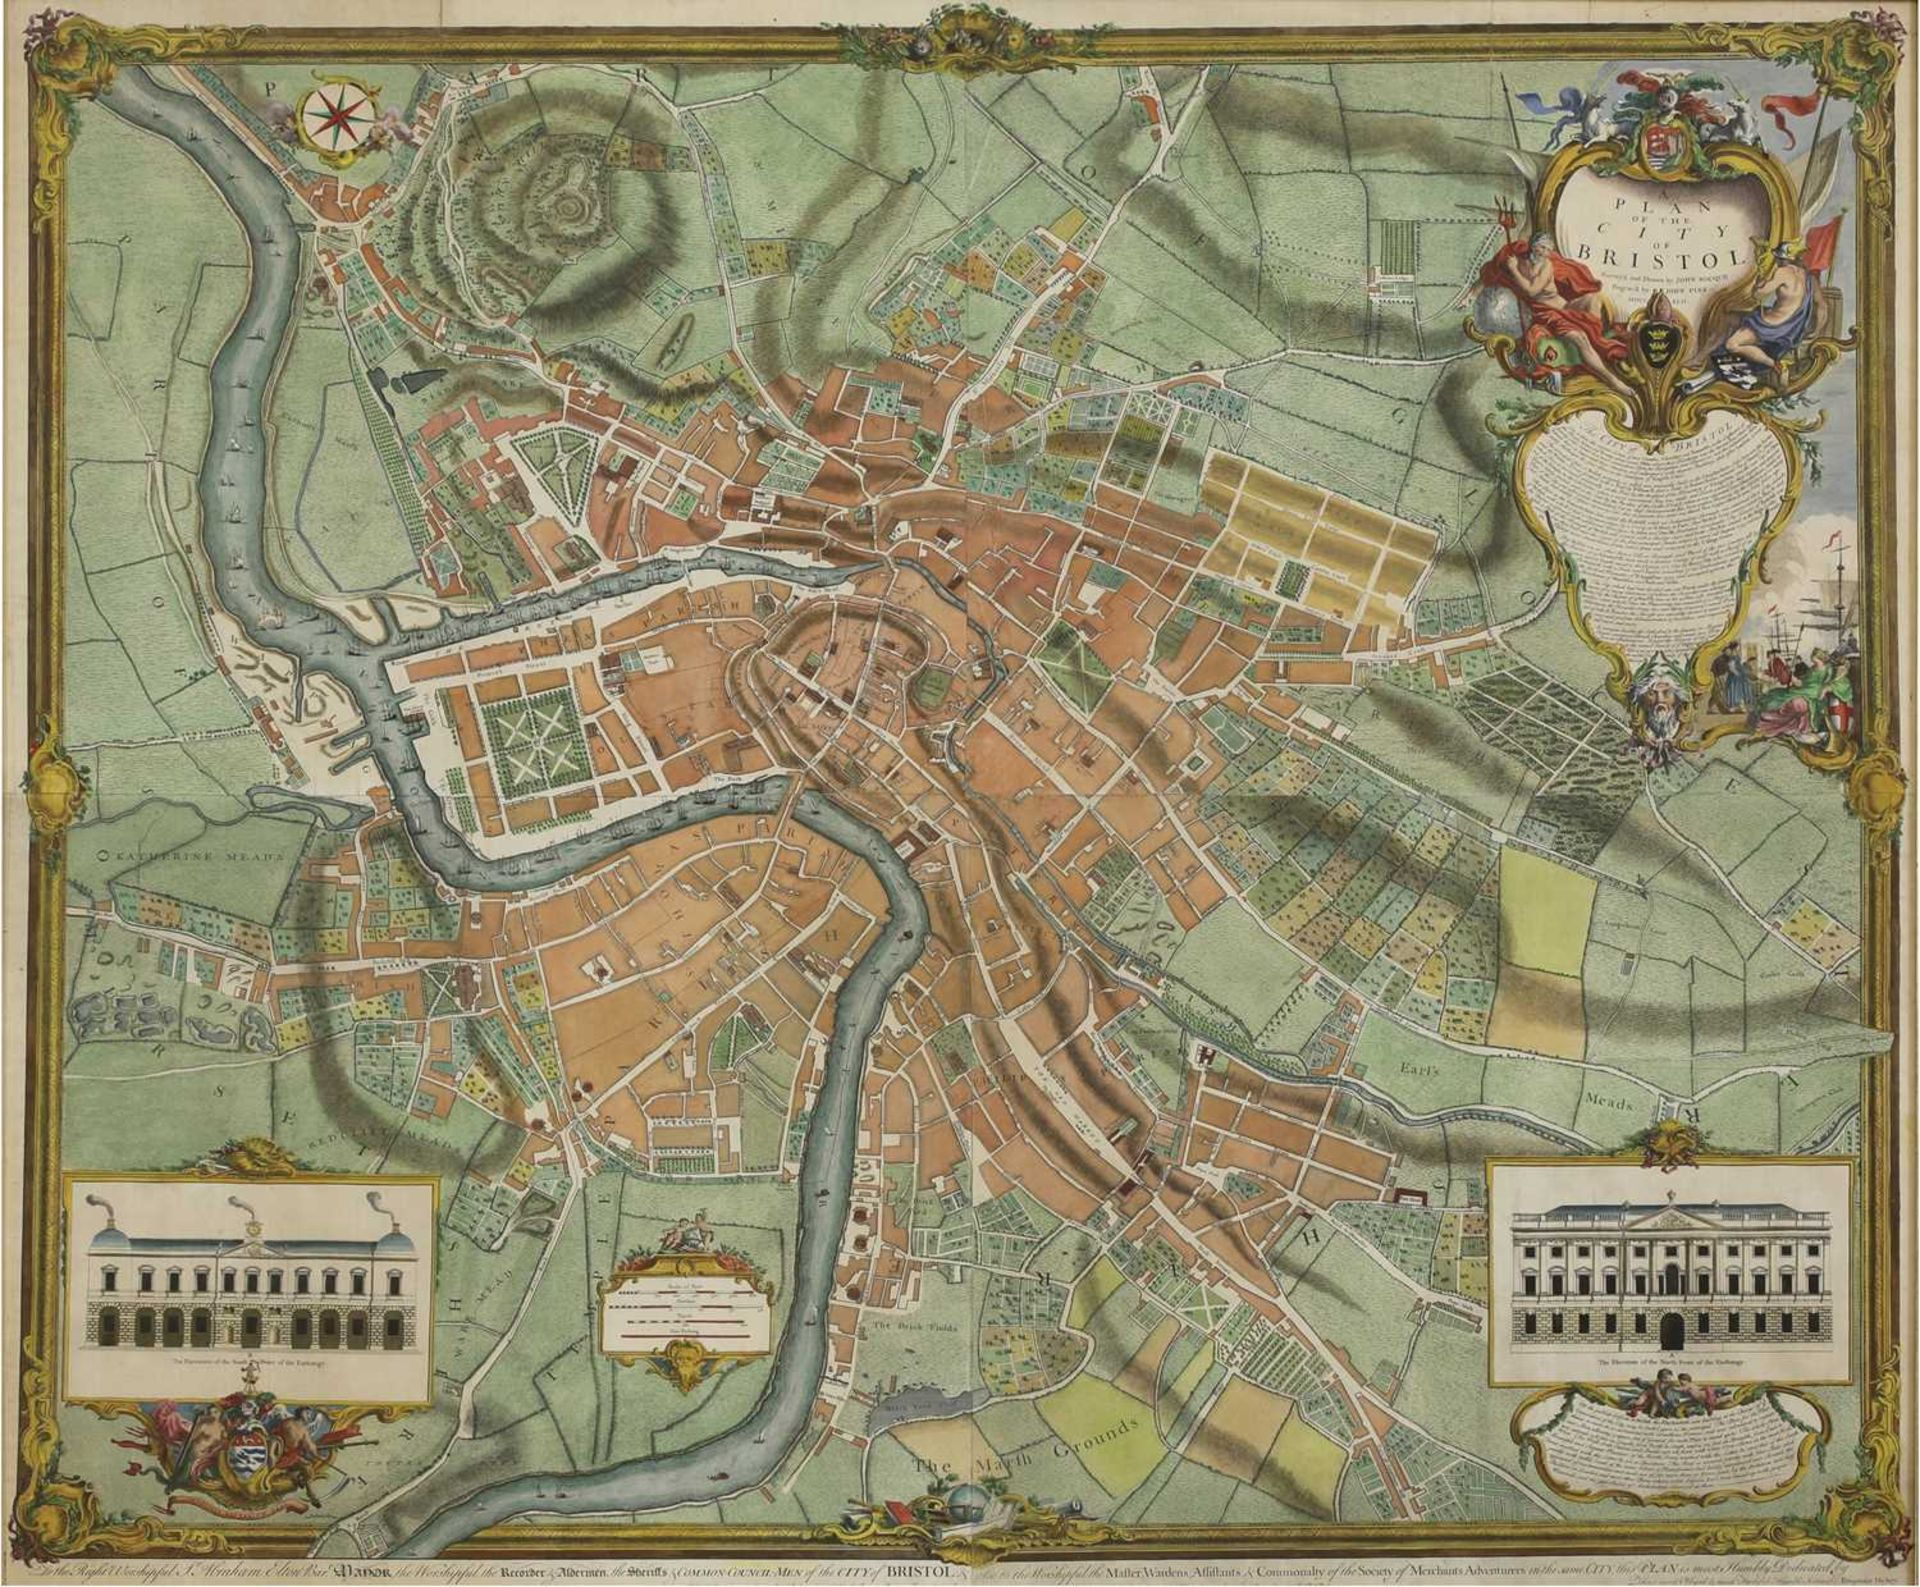 'A Plan of The City of Bristol, survey'd and drawn by John Rocque, engraved by John Pine 1742', - Image 2 of 3